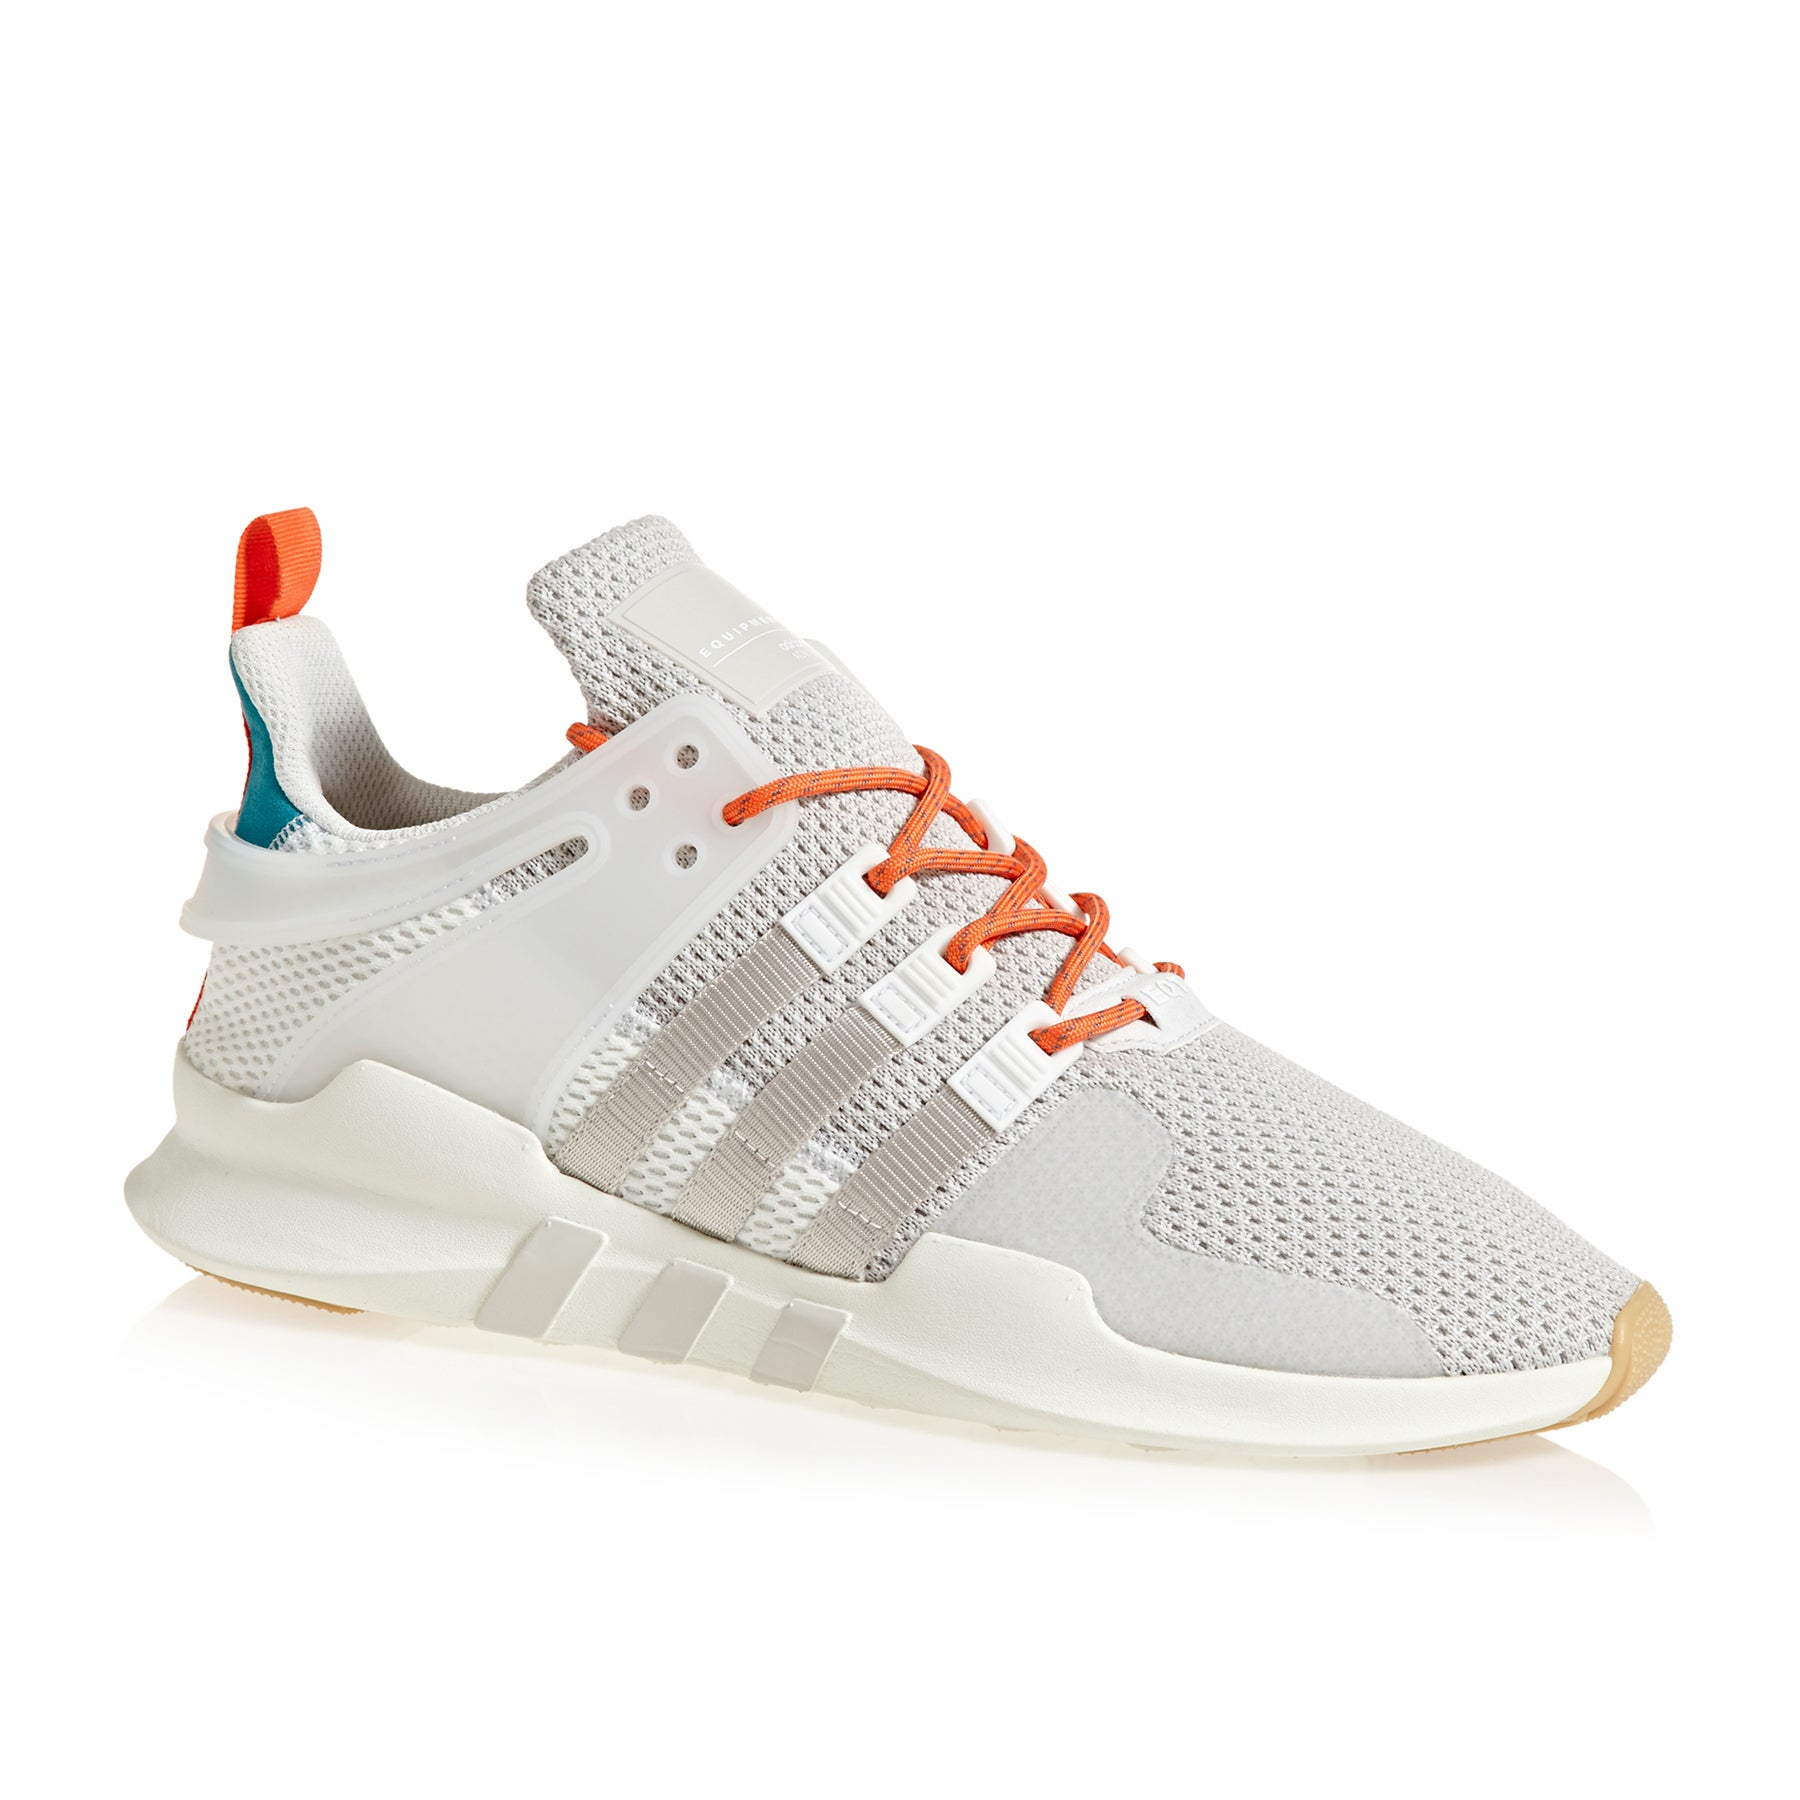 Adidas Originals EQT Support Adv Summer Shoes